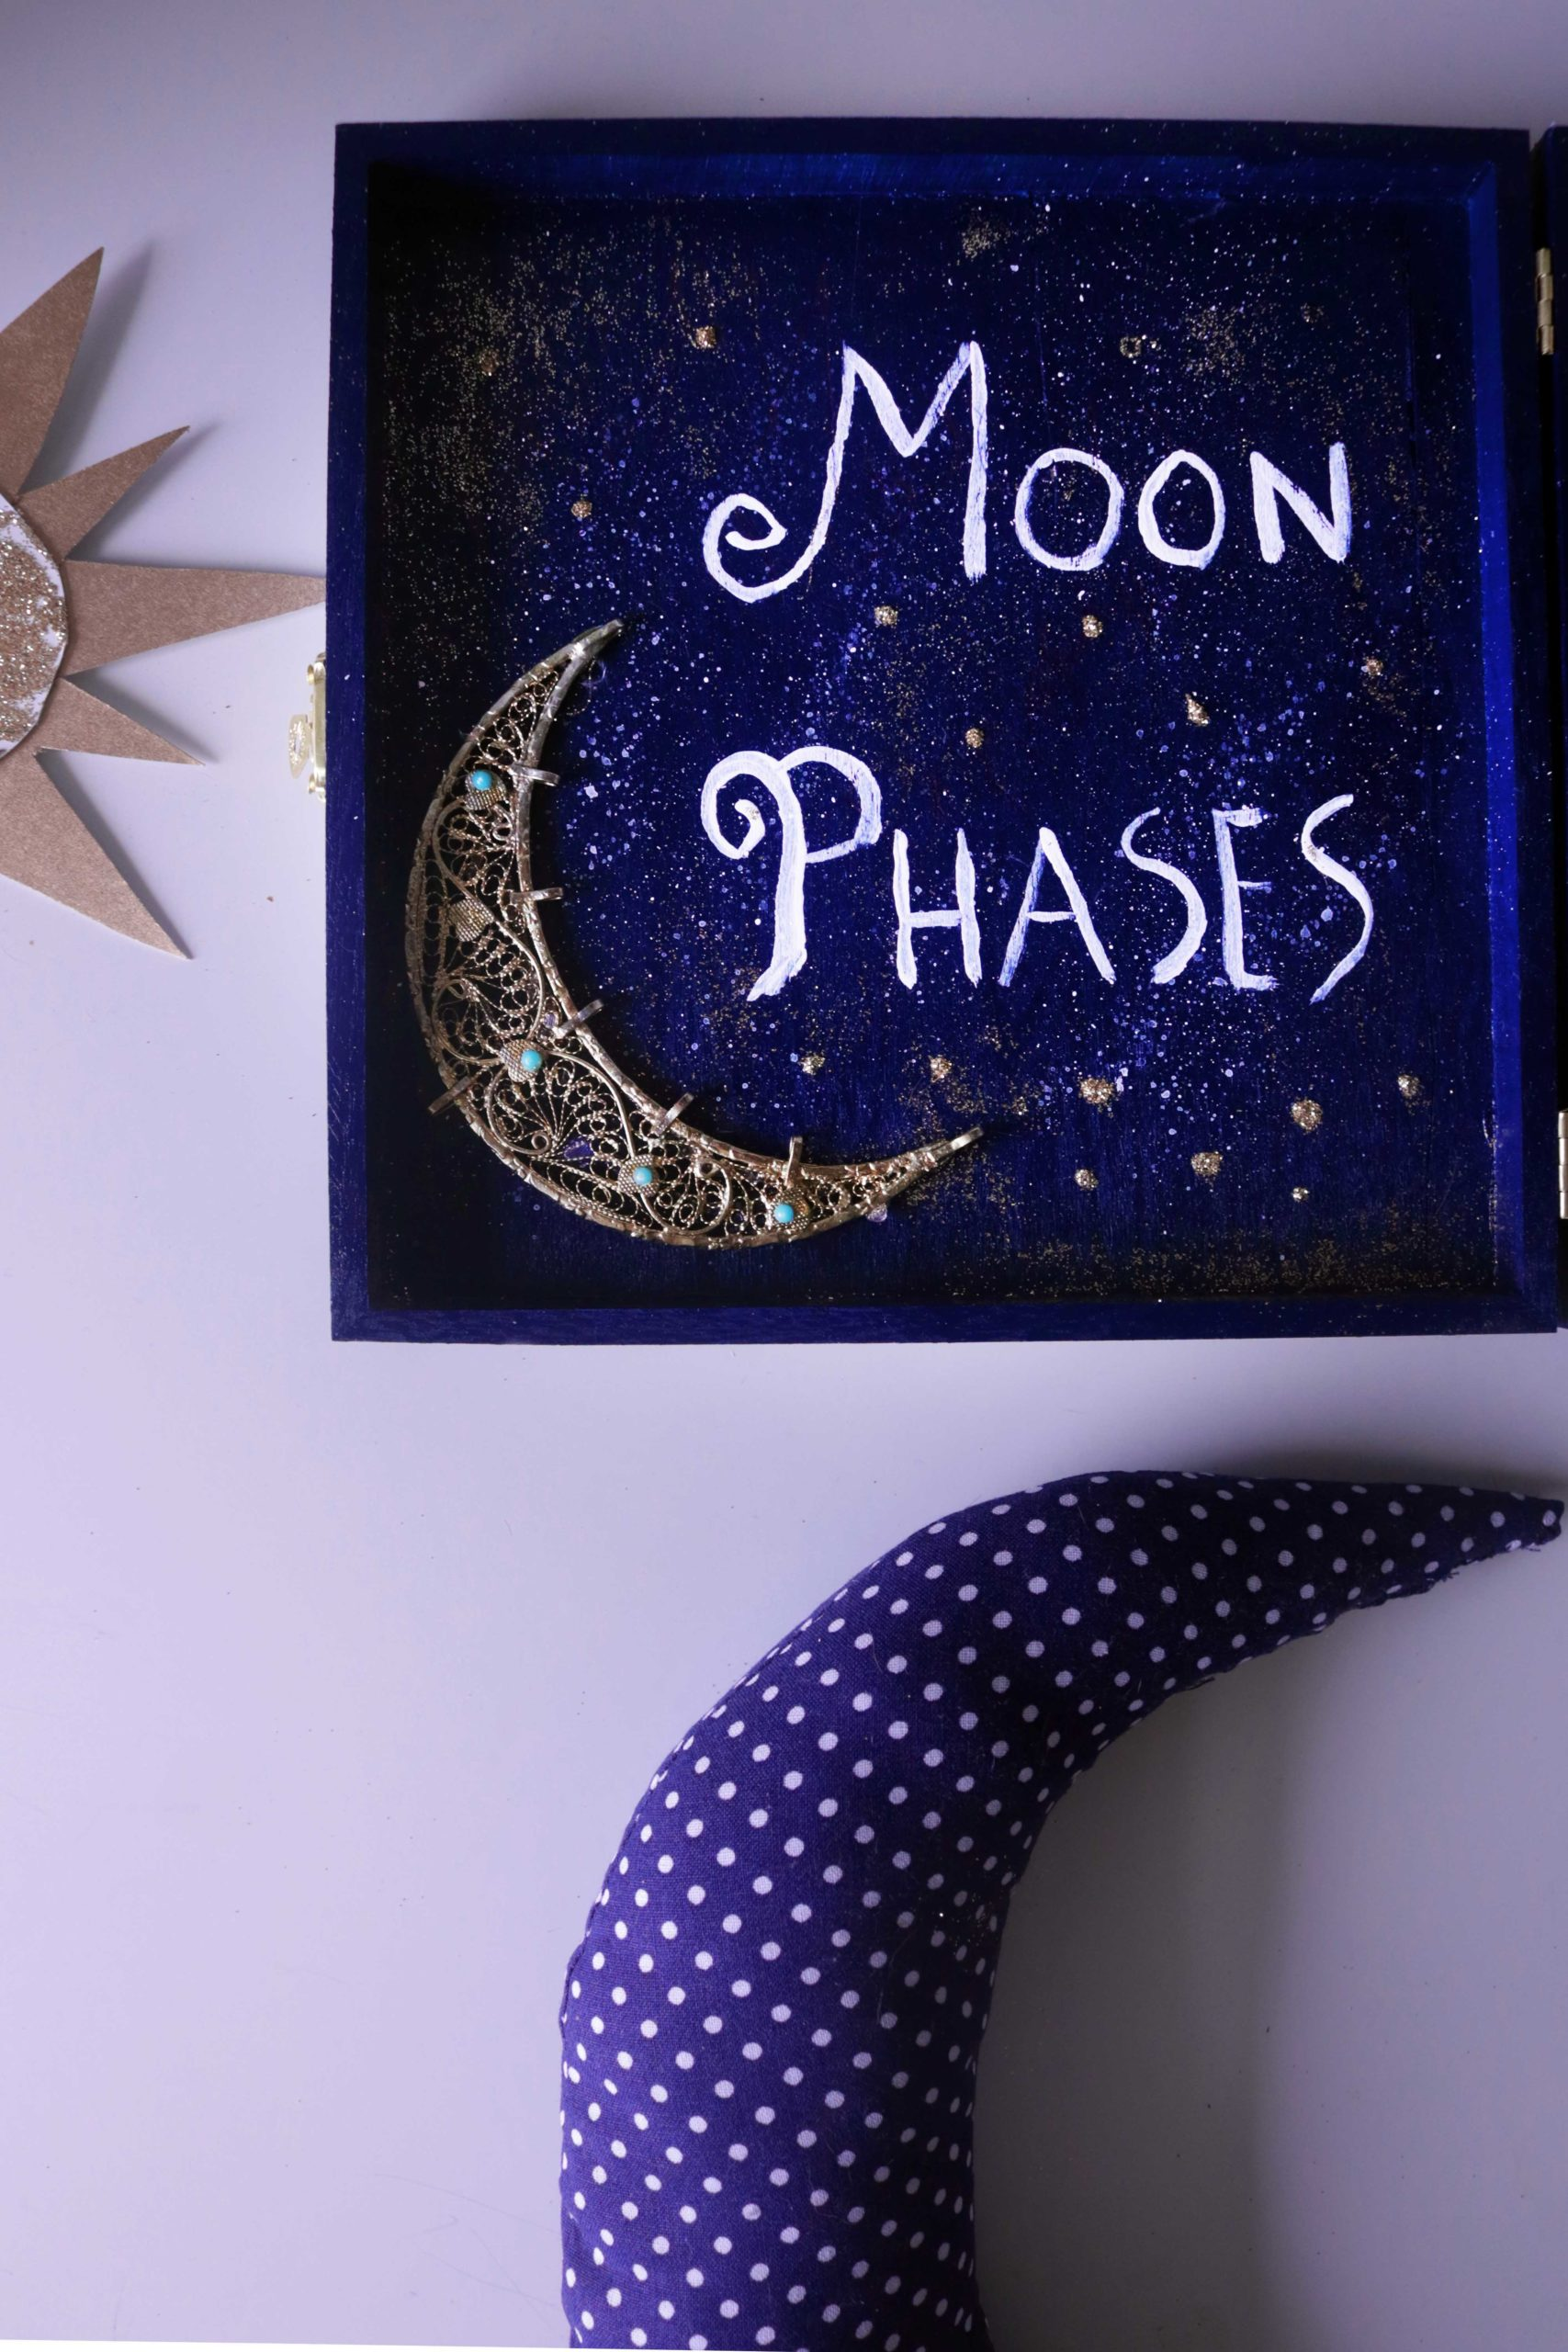 Moon phase tracking altar for Esbats or to stay in tune with the lunar cycle.